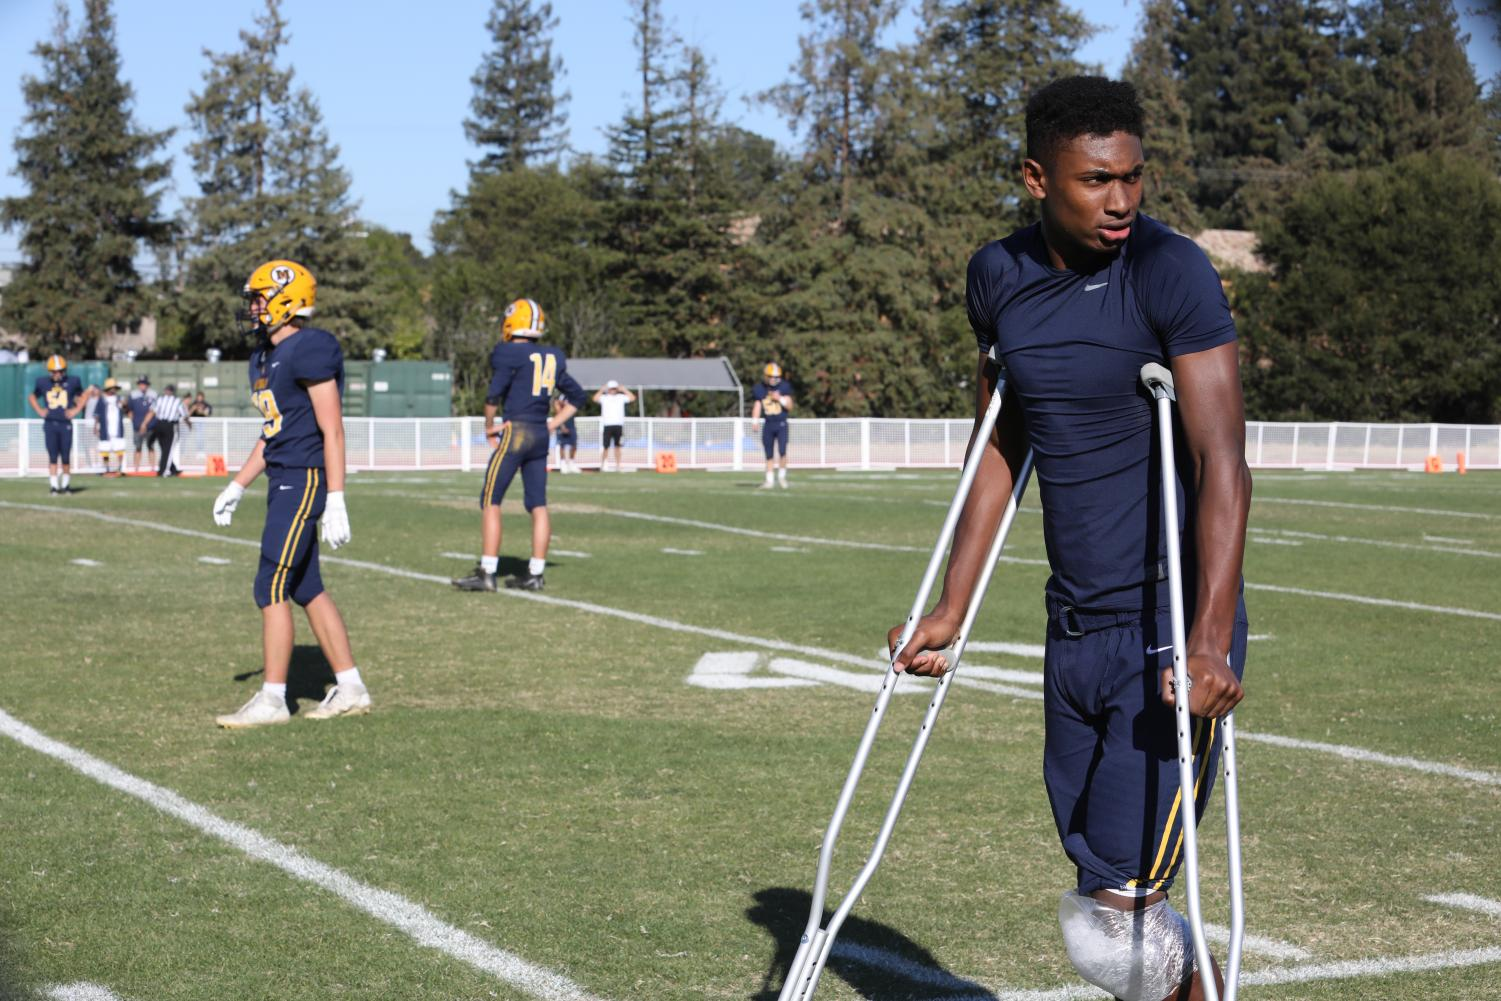 Junior Jaden Richardson on the sidelines after suffering a knee injury. Staff Photo: Parina Patel.